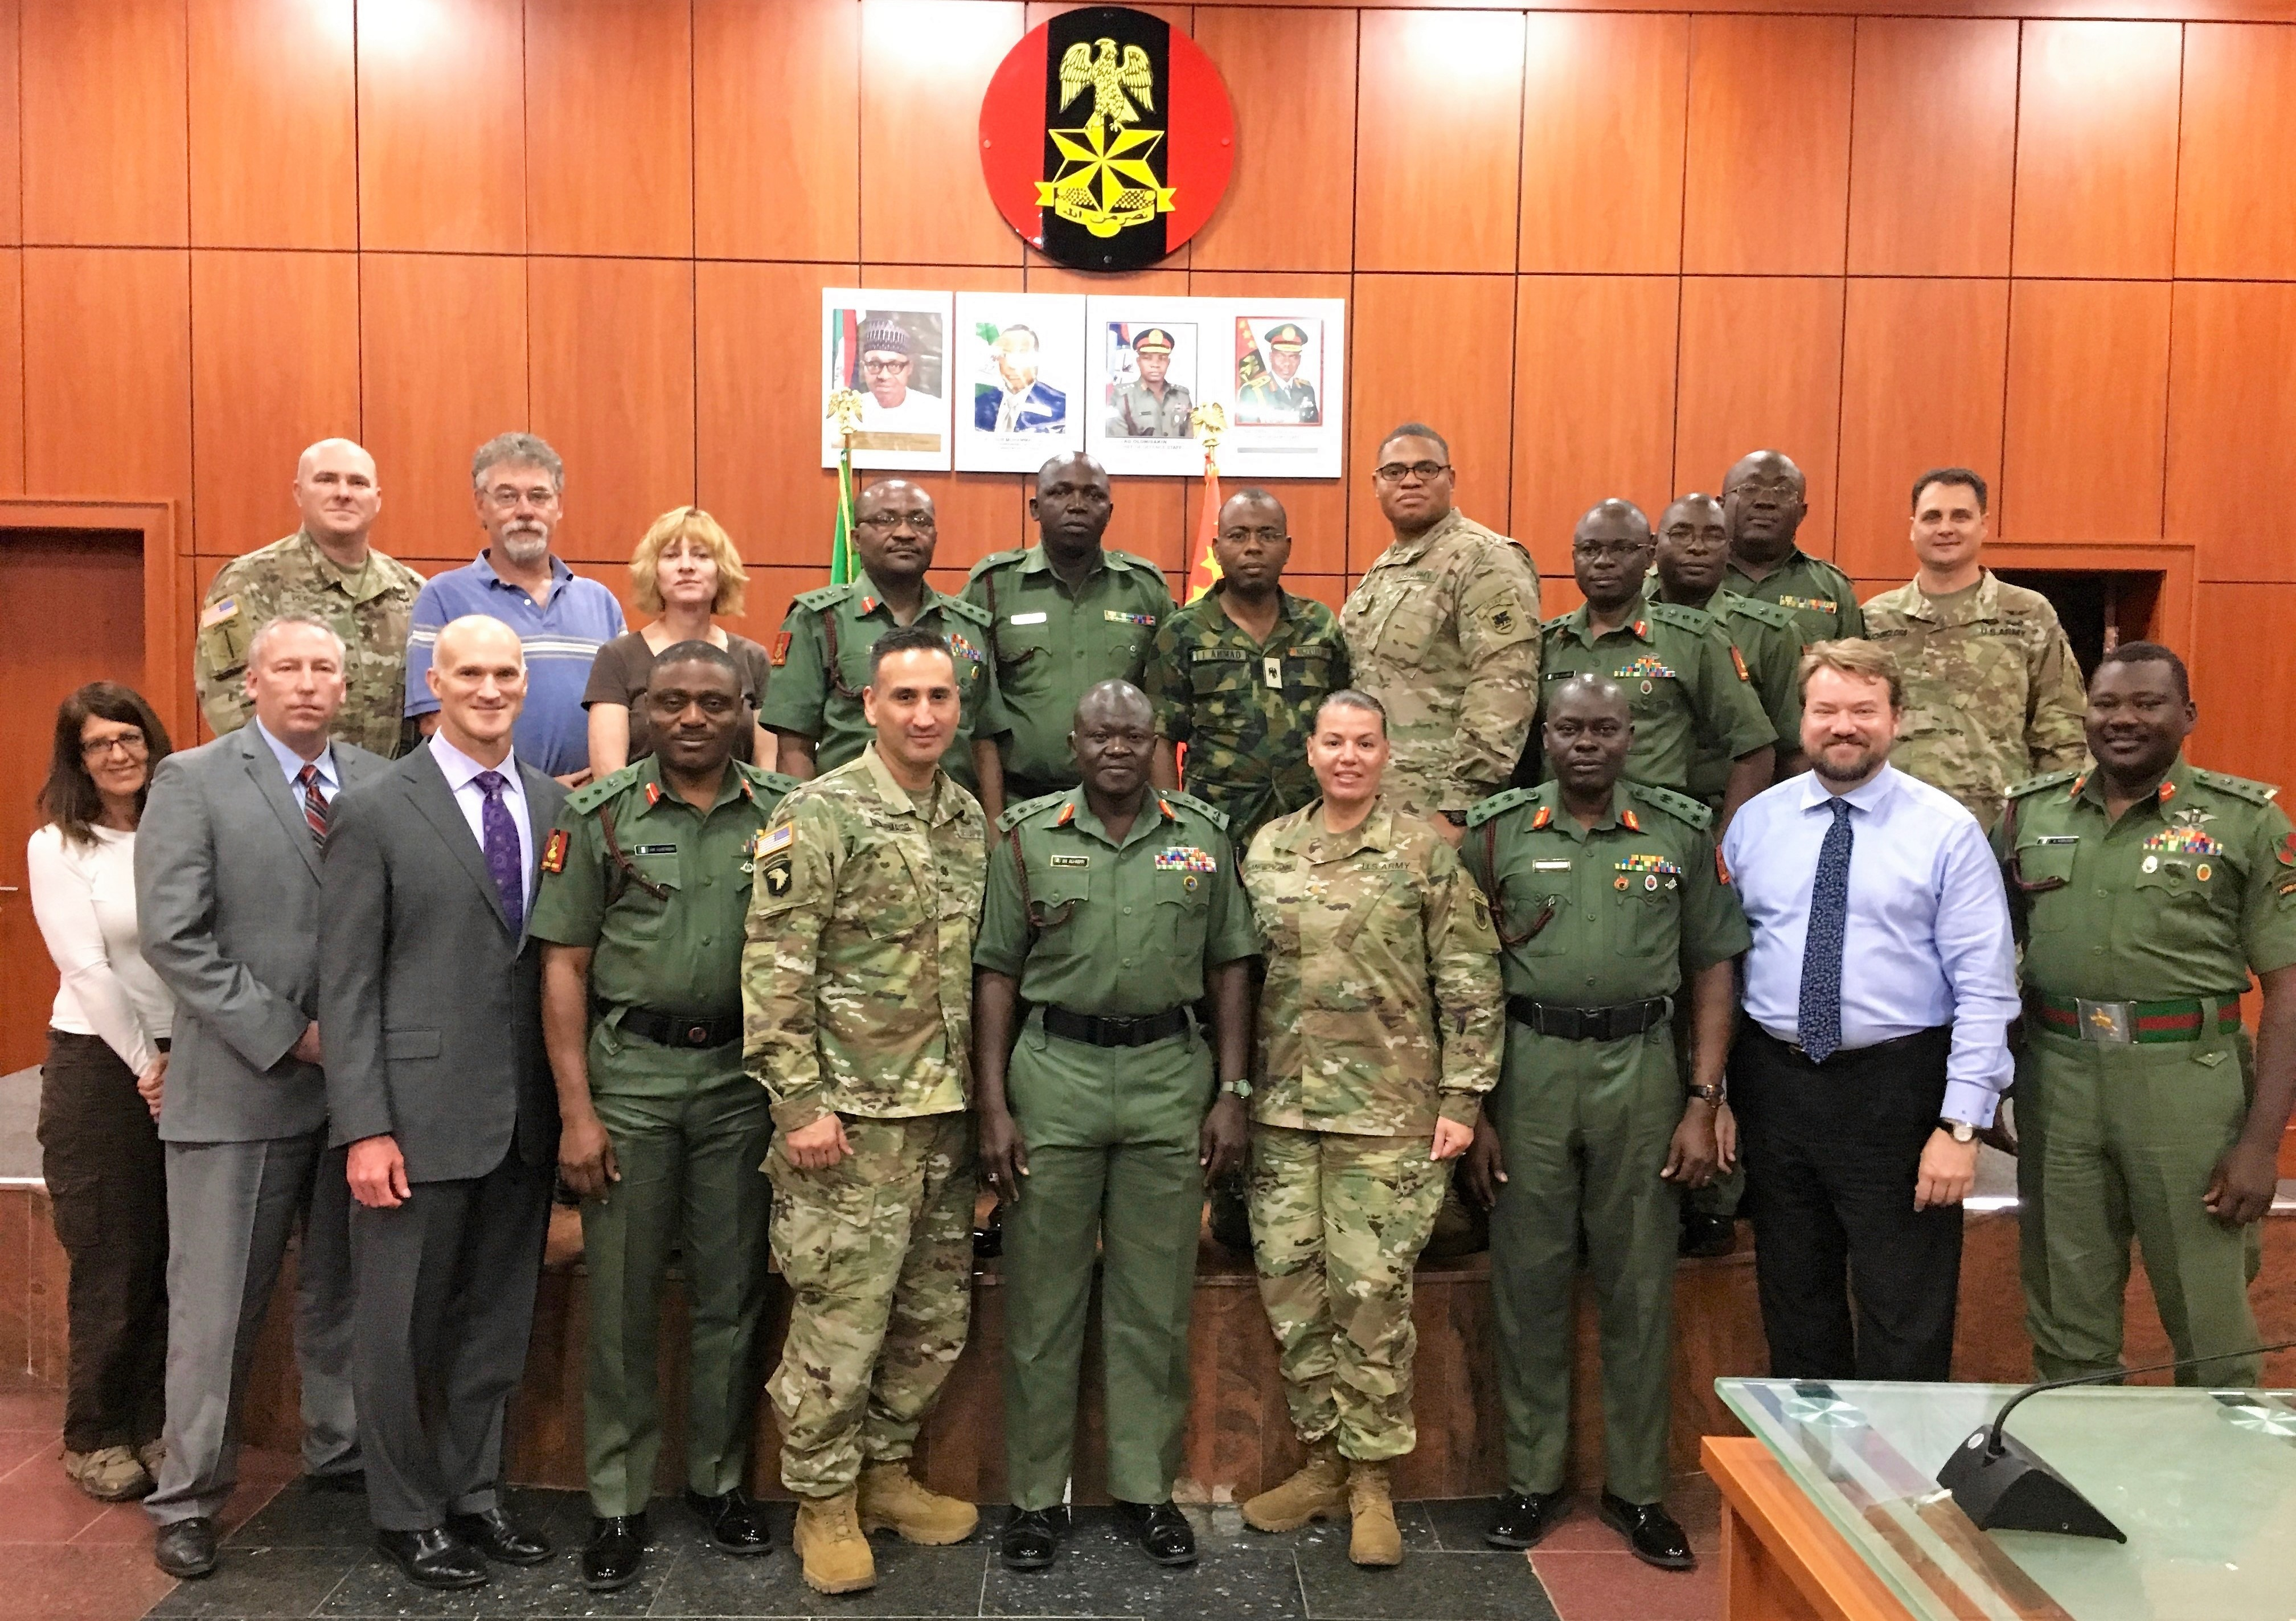 Armed Forces Nigeria and U.S. Army Africa's African Land Forces Summit pose for a group photo in AFN's headquarters in Abuja after introductions and discussion on plans and preparations for next years African Land Forces Summit.  ALFS is a weeklong seminar designed to give African land force's chiefs an opportunity to discuss and develop solutions for improving security and stability in their home country. (Photo by Capt. James Sheehan)